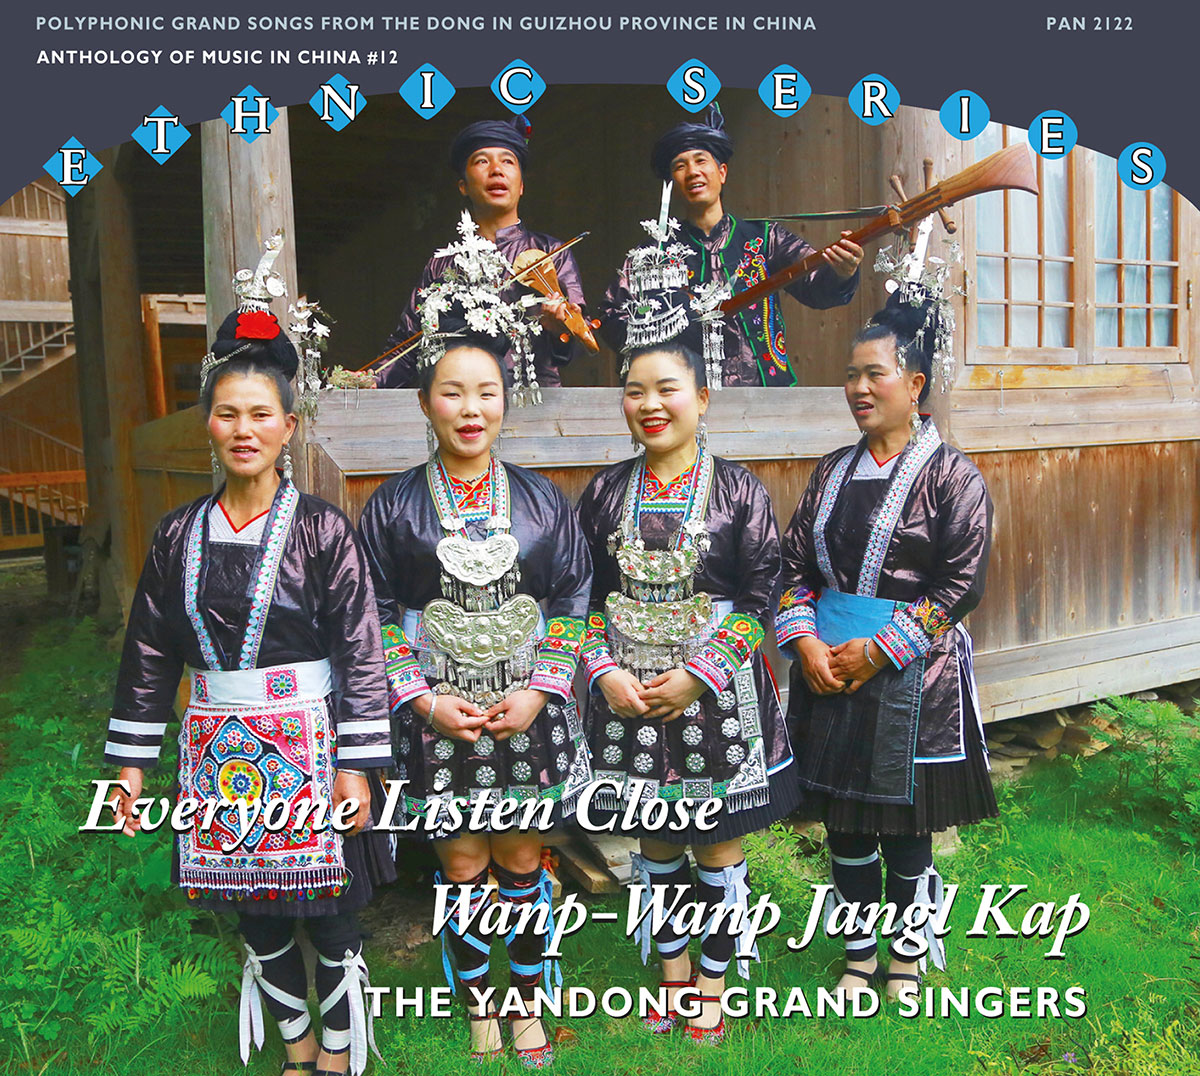 CD cover with photo of four women in ornate dress and two men with stringed instruments. Text reads: Ethnic Series. Everyone Listen Close / Wanp-Wanp Jangl Kap. The Yandong Grand Singers.